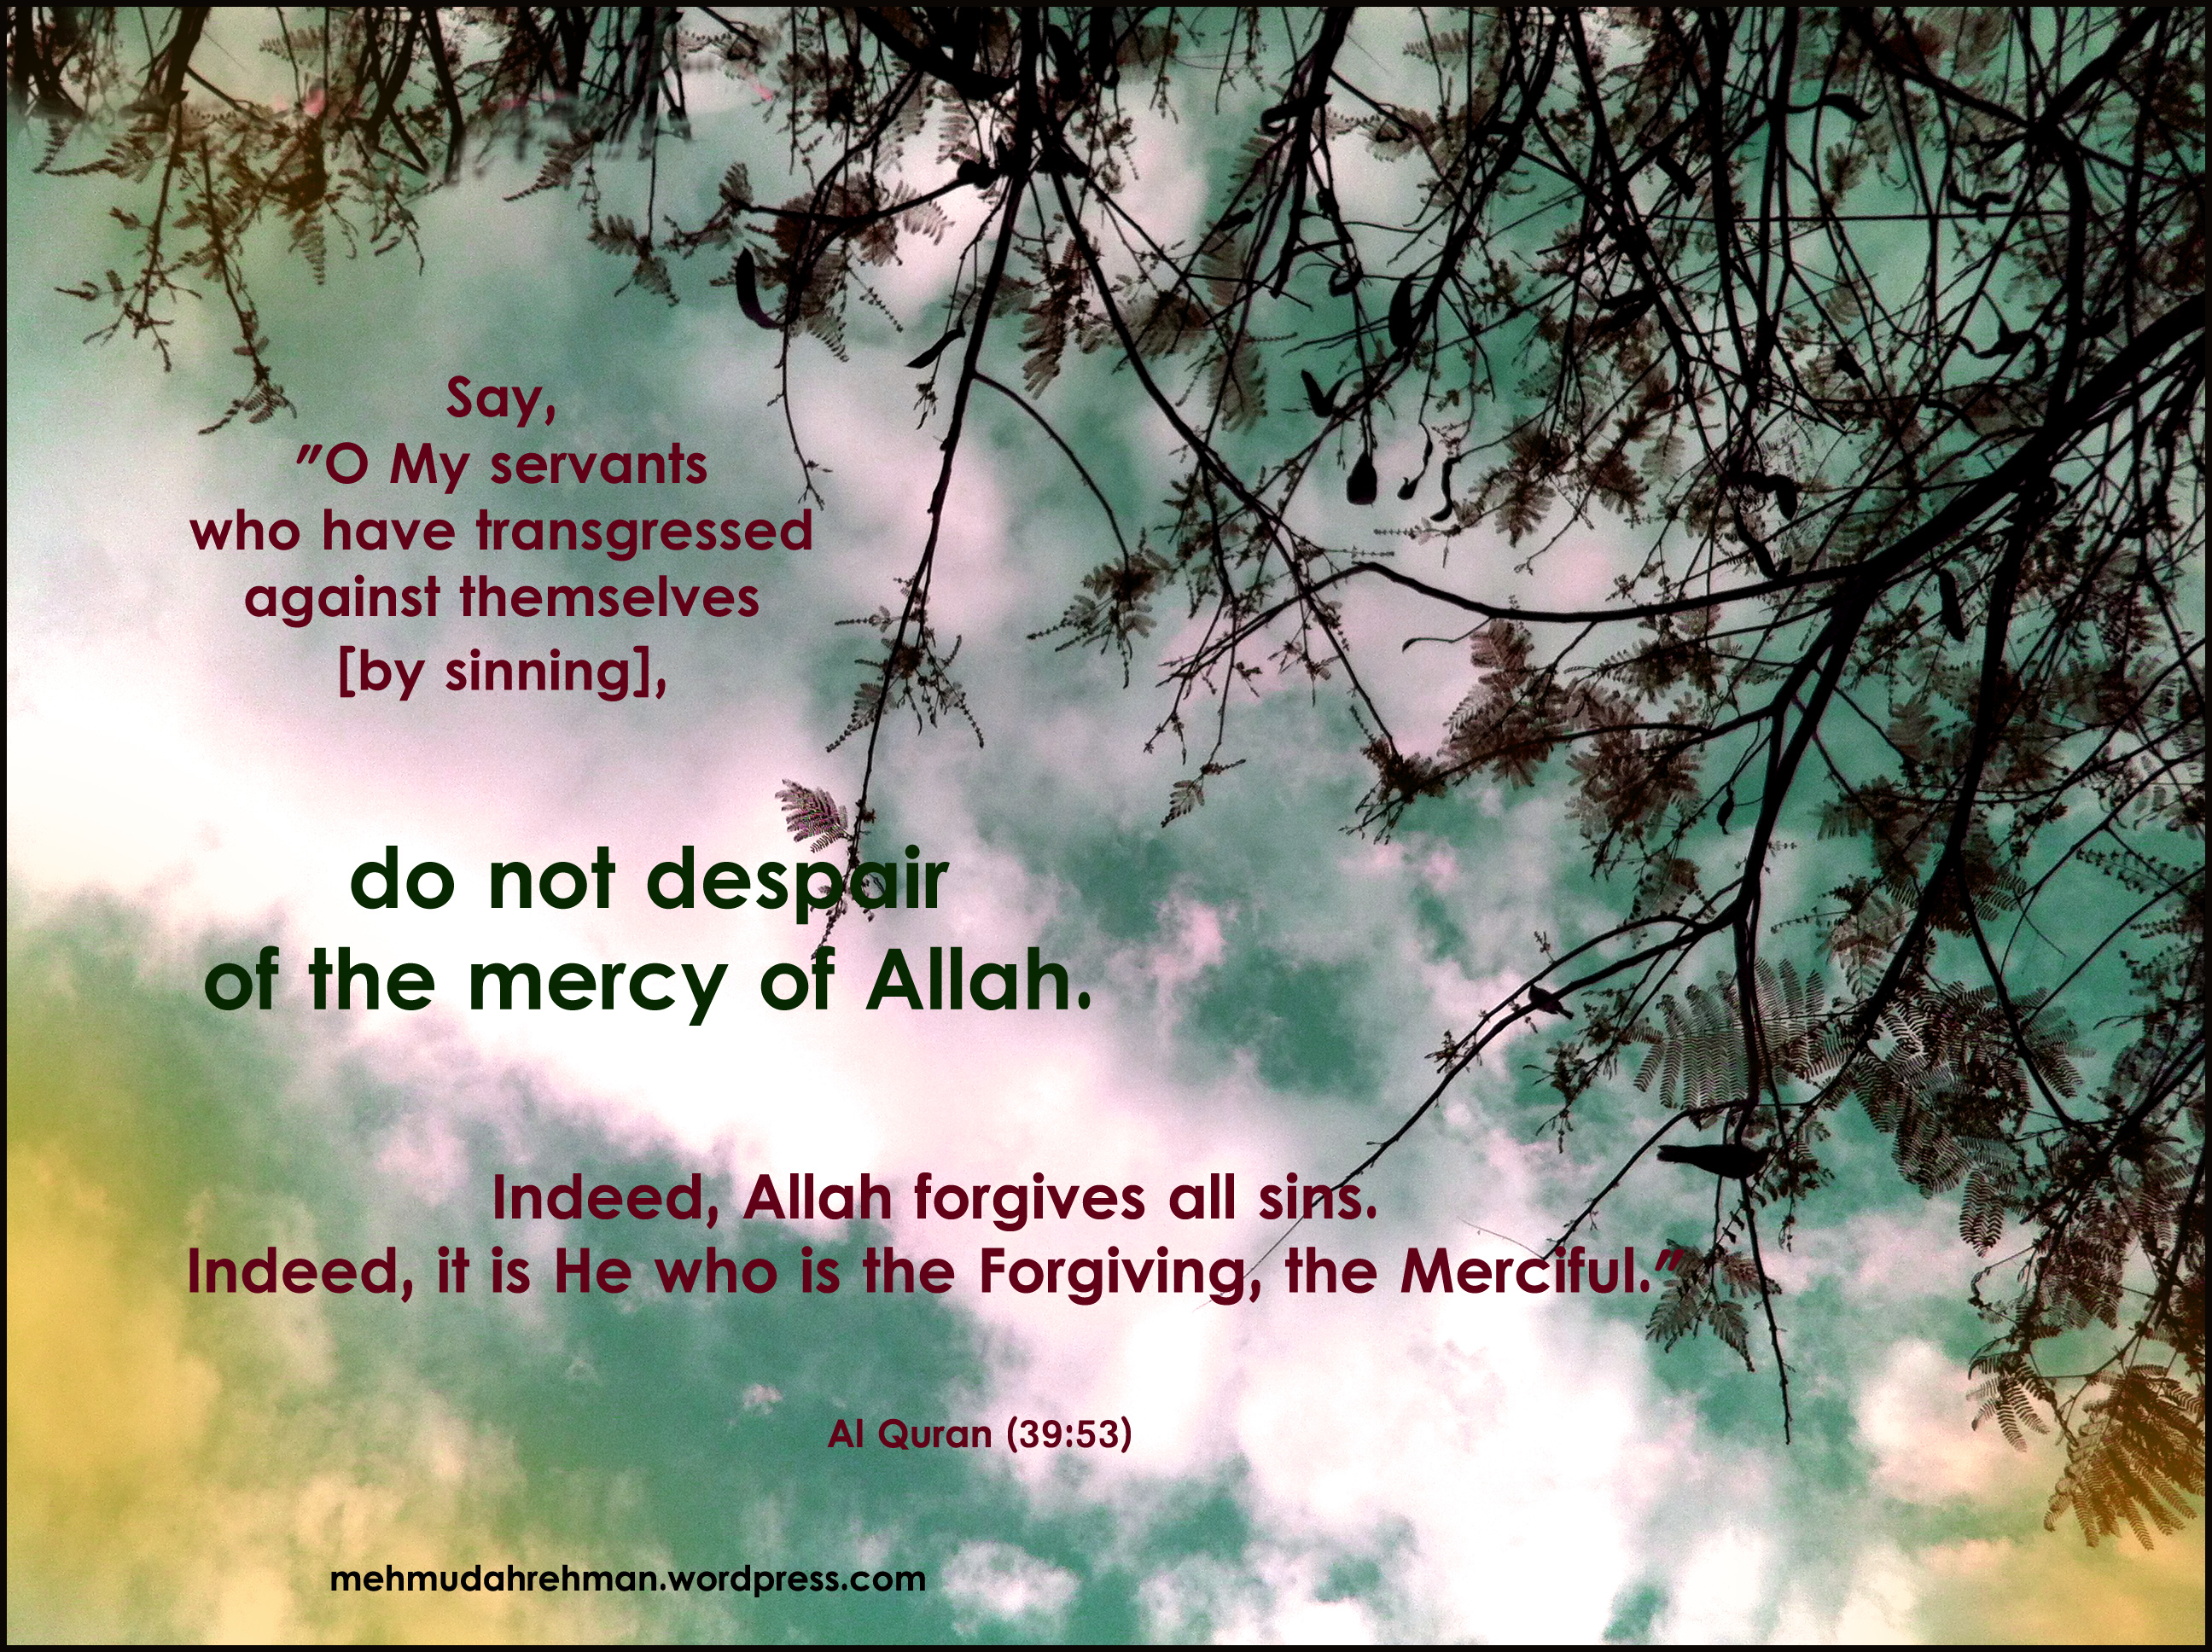 Do not despair of the mercy of Allah.